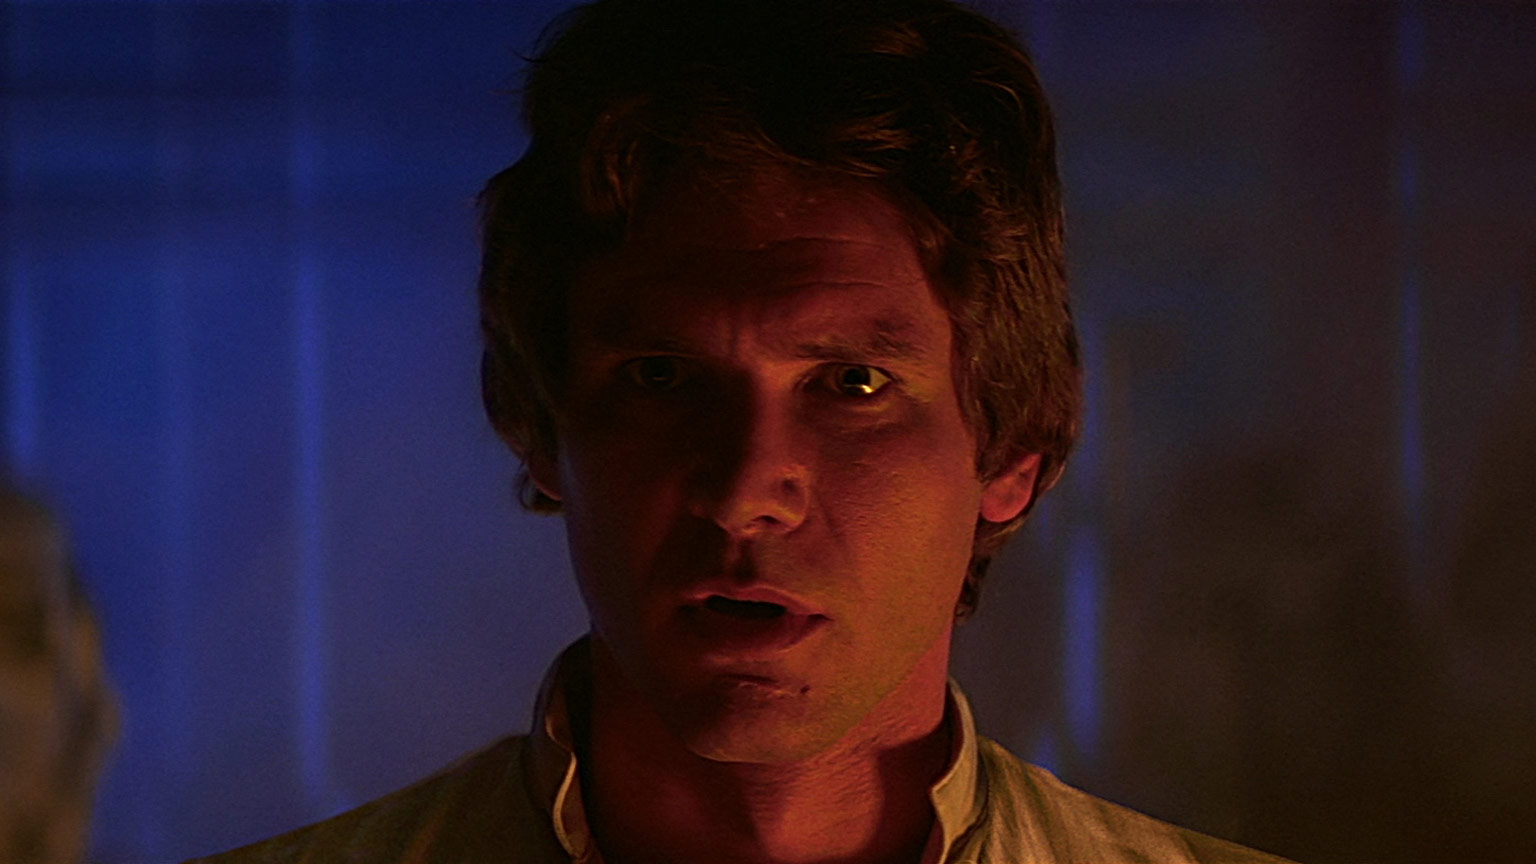 Han Solo in the carbon freeze chamber in Star Wars: The Empire Strikes Back.